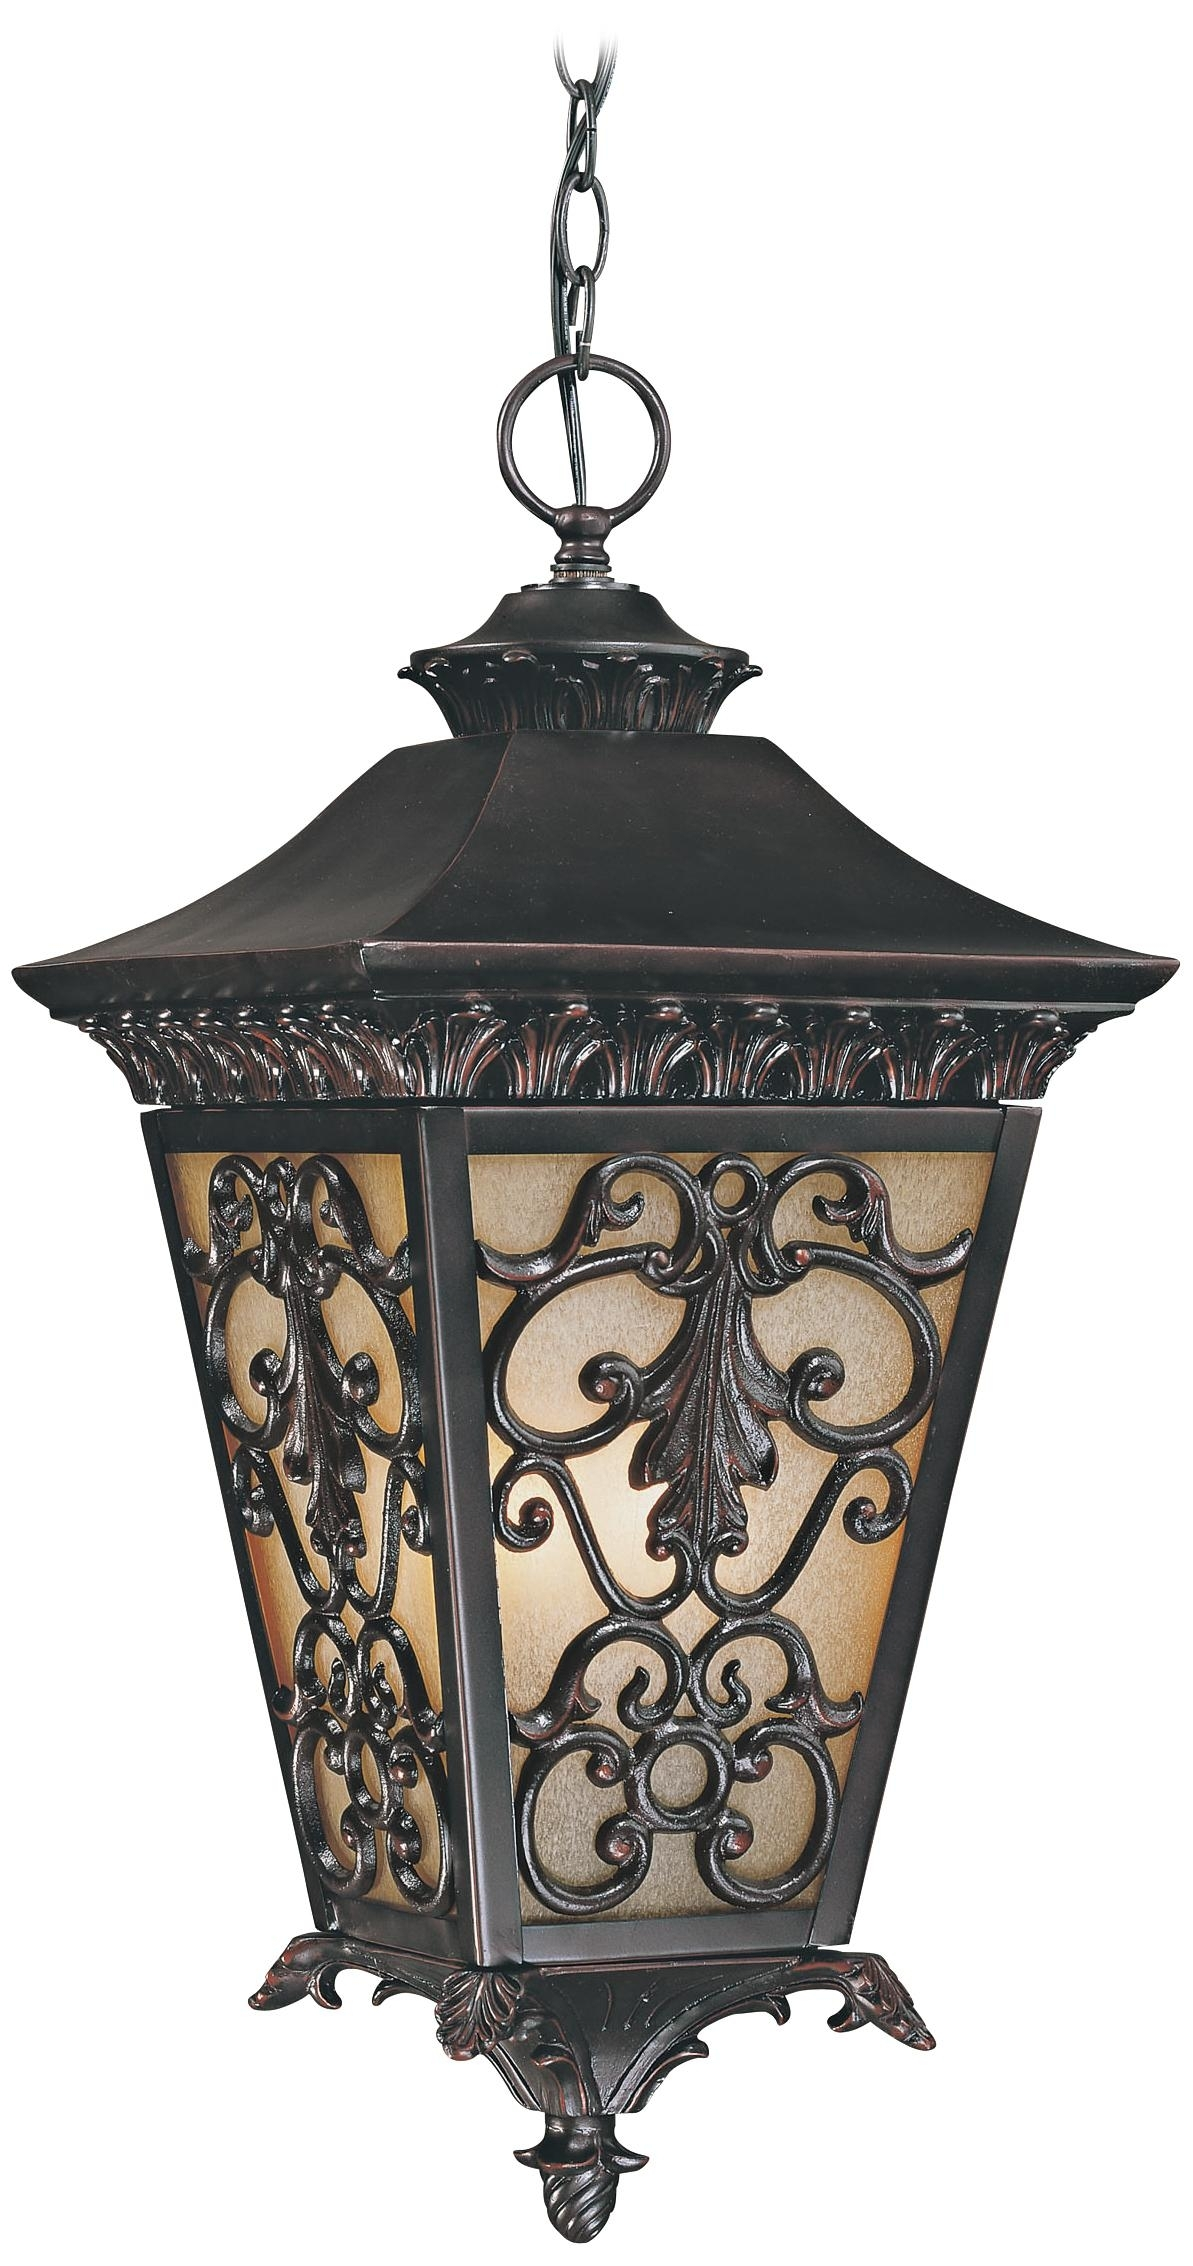 Bientina Collection 23 1/4 High Outdoor Hanging Light – | Tuscan Old Inside Outdoor Hanging Lights For Porch (View 9 of 15)